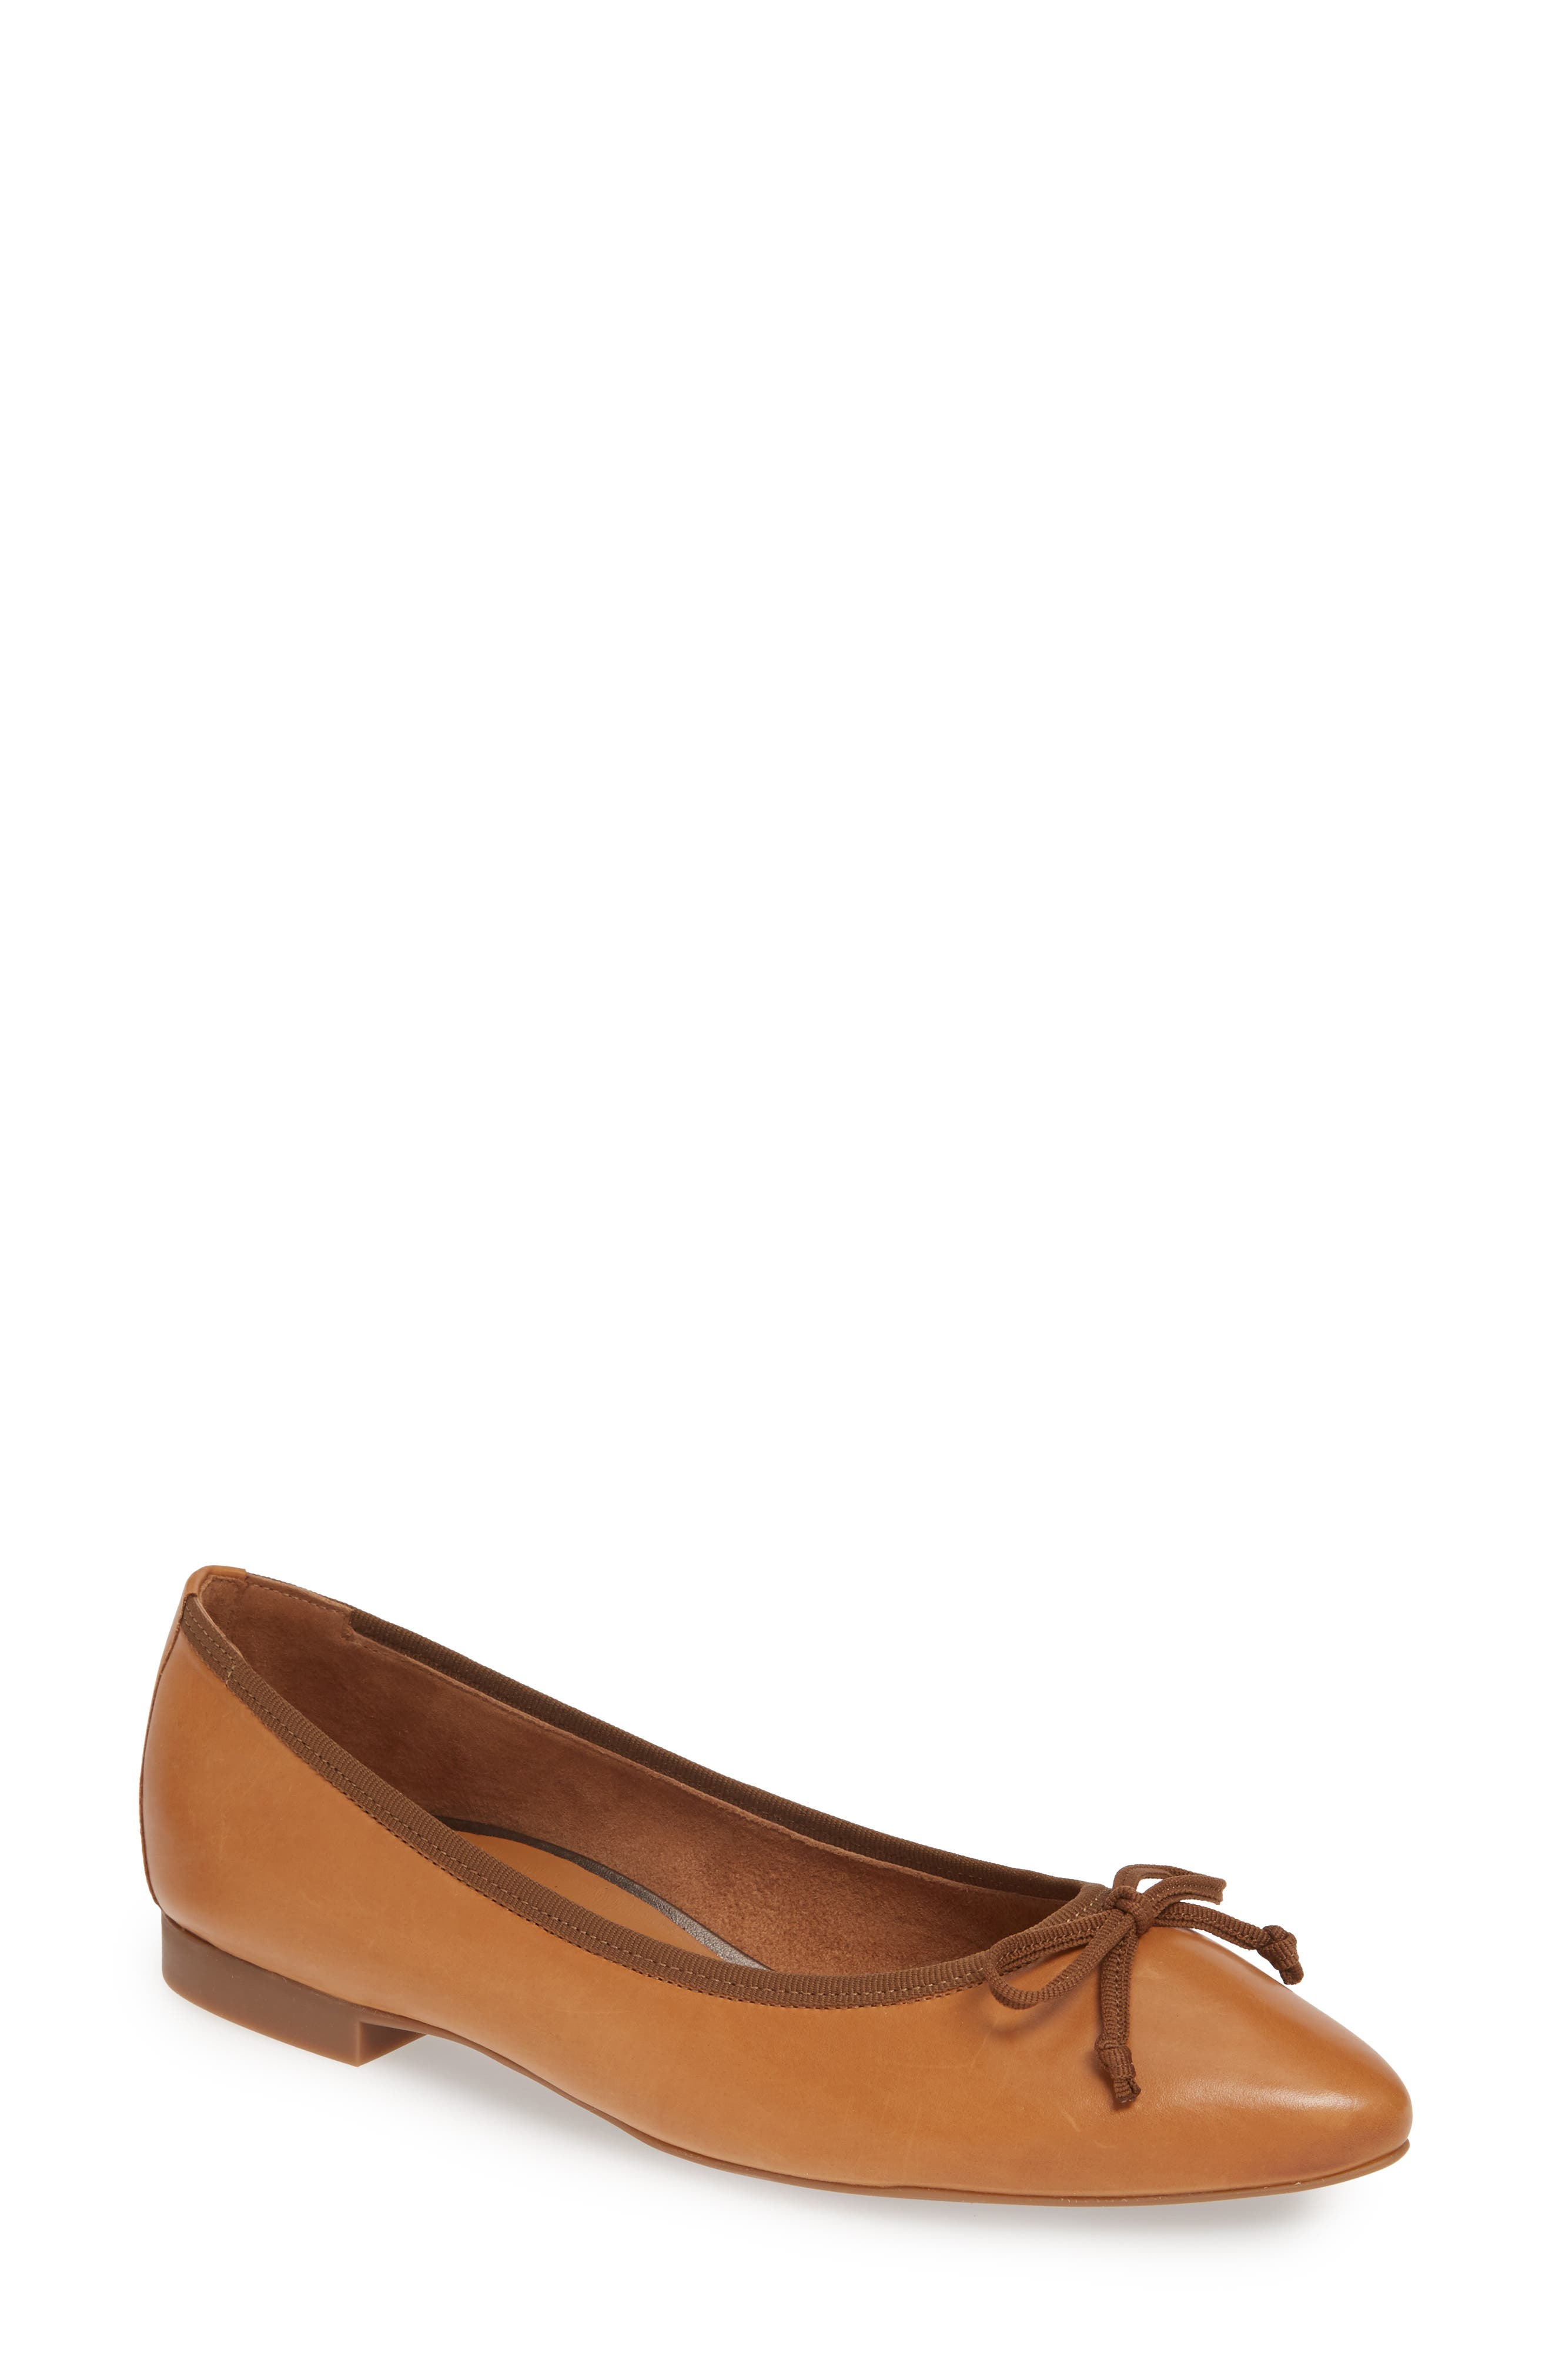 Paul Green Andre Pointy Toe Ballet Flat, US / 6.5UK - Brown